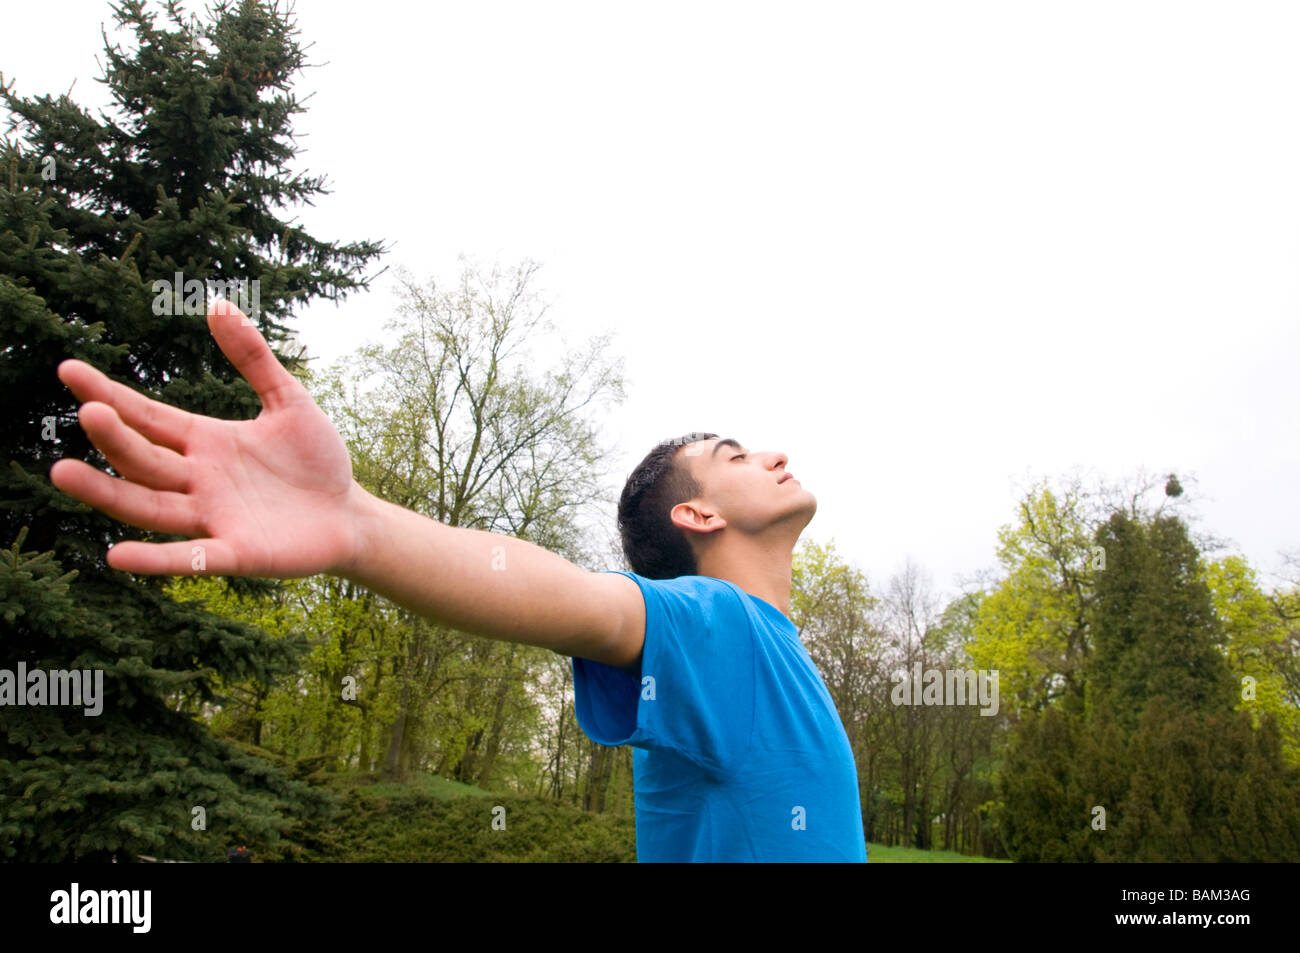 Young happy man in harmony with nature - Stock Image